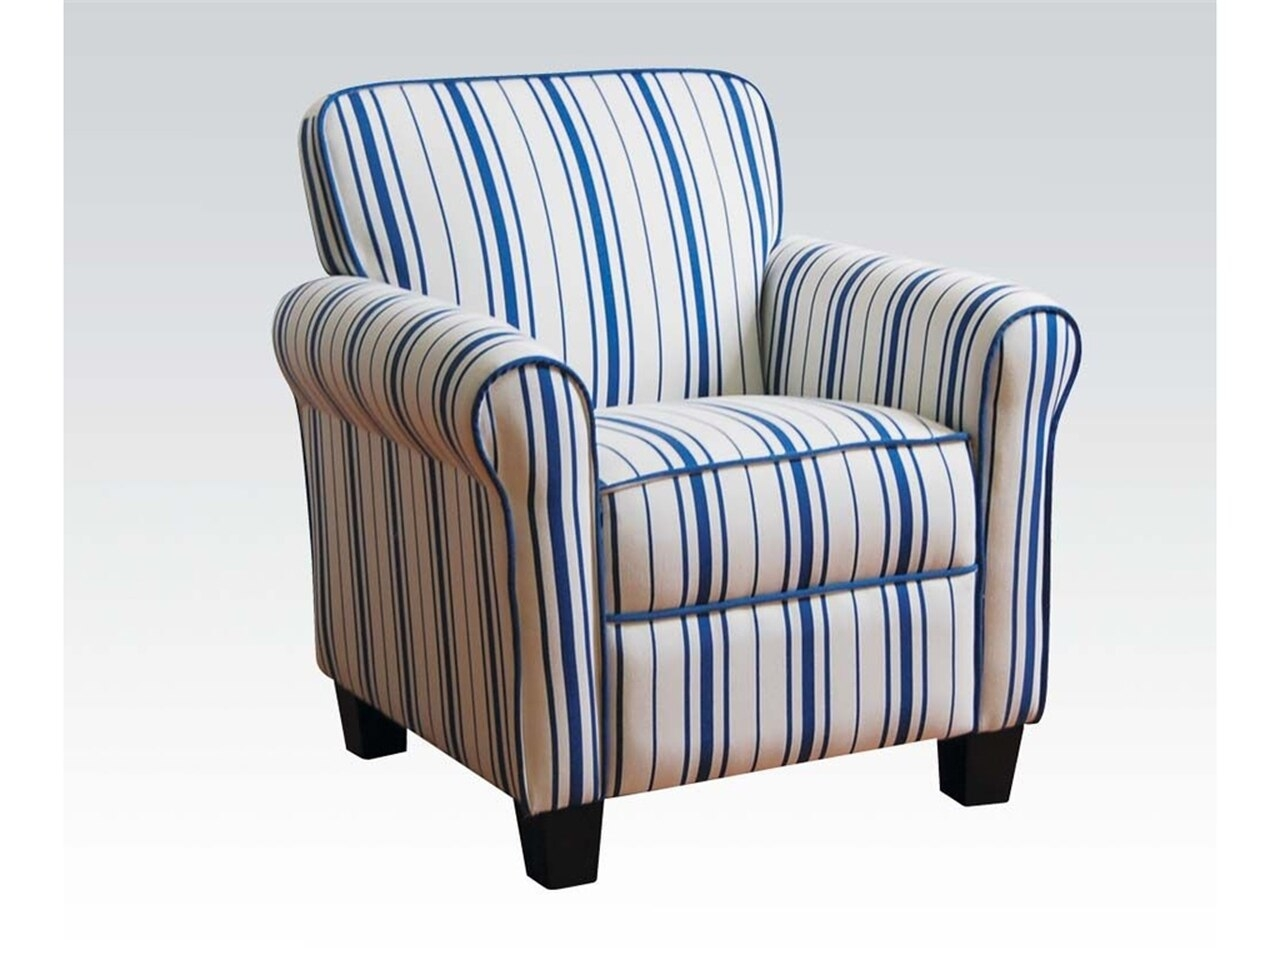 And Blue Striped Fabric Cozy Traditional Armchair Design 25 High